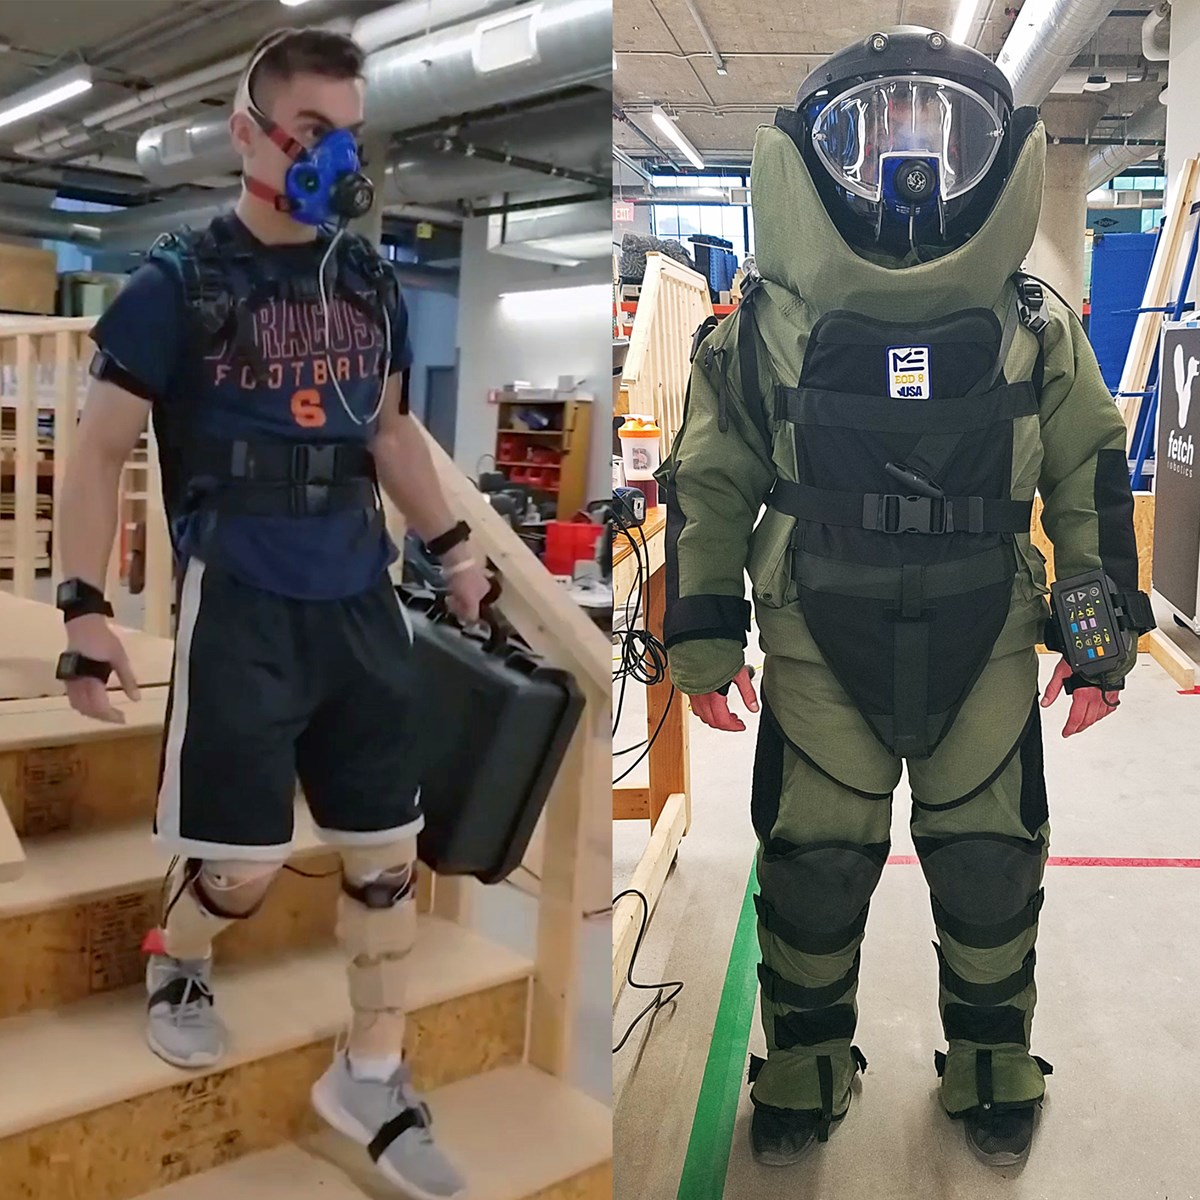 Person wearing biometrics sensors (left) and person wearing biometric sensors underneath an EOD suit (right)